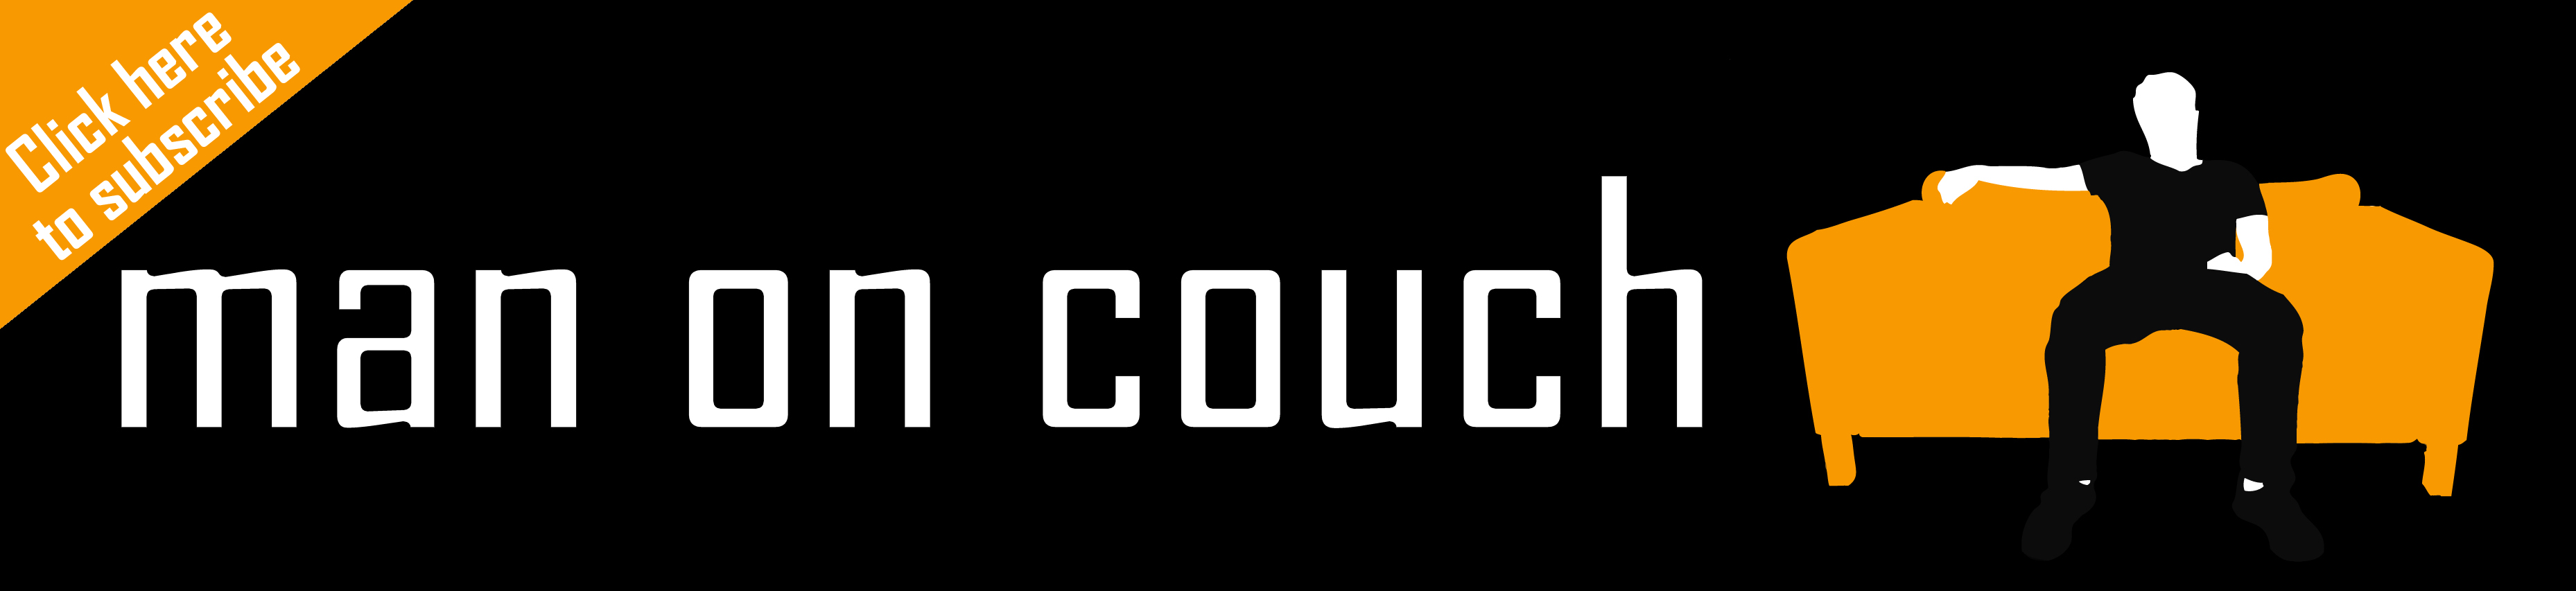 man on couch logo